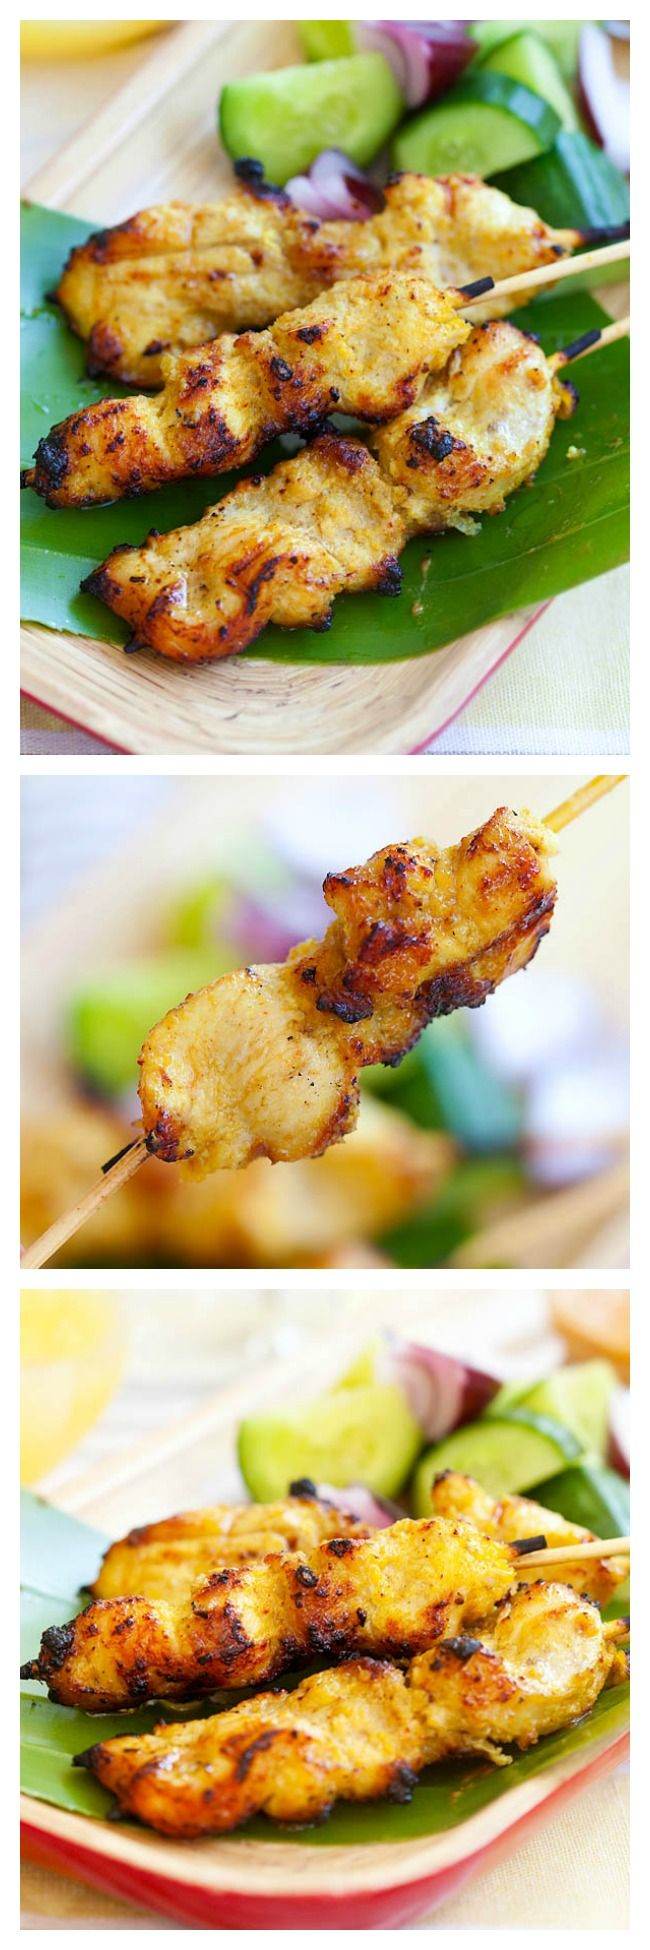 Chicken satay, Malaysian version.